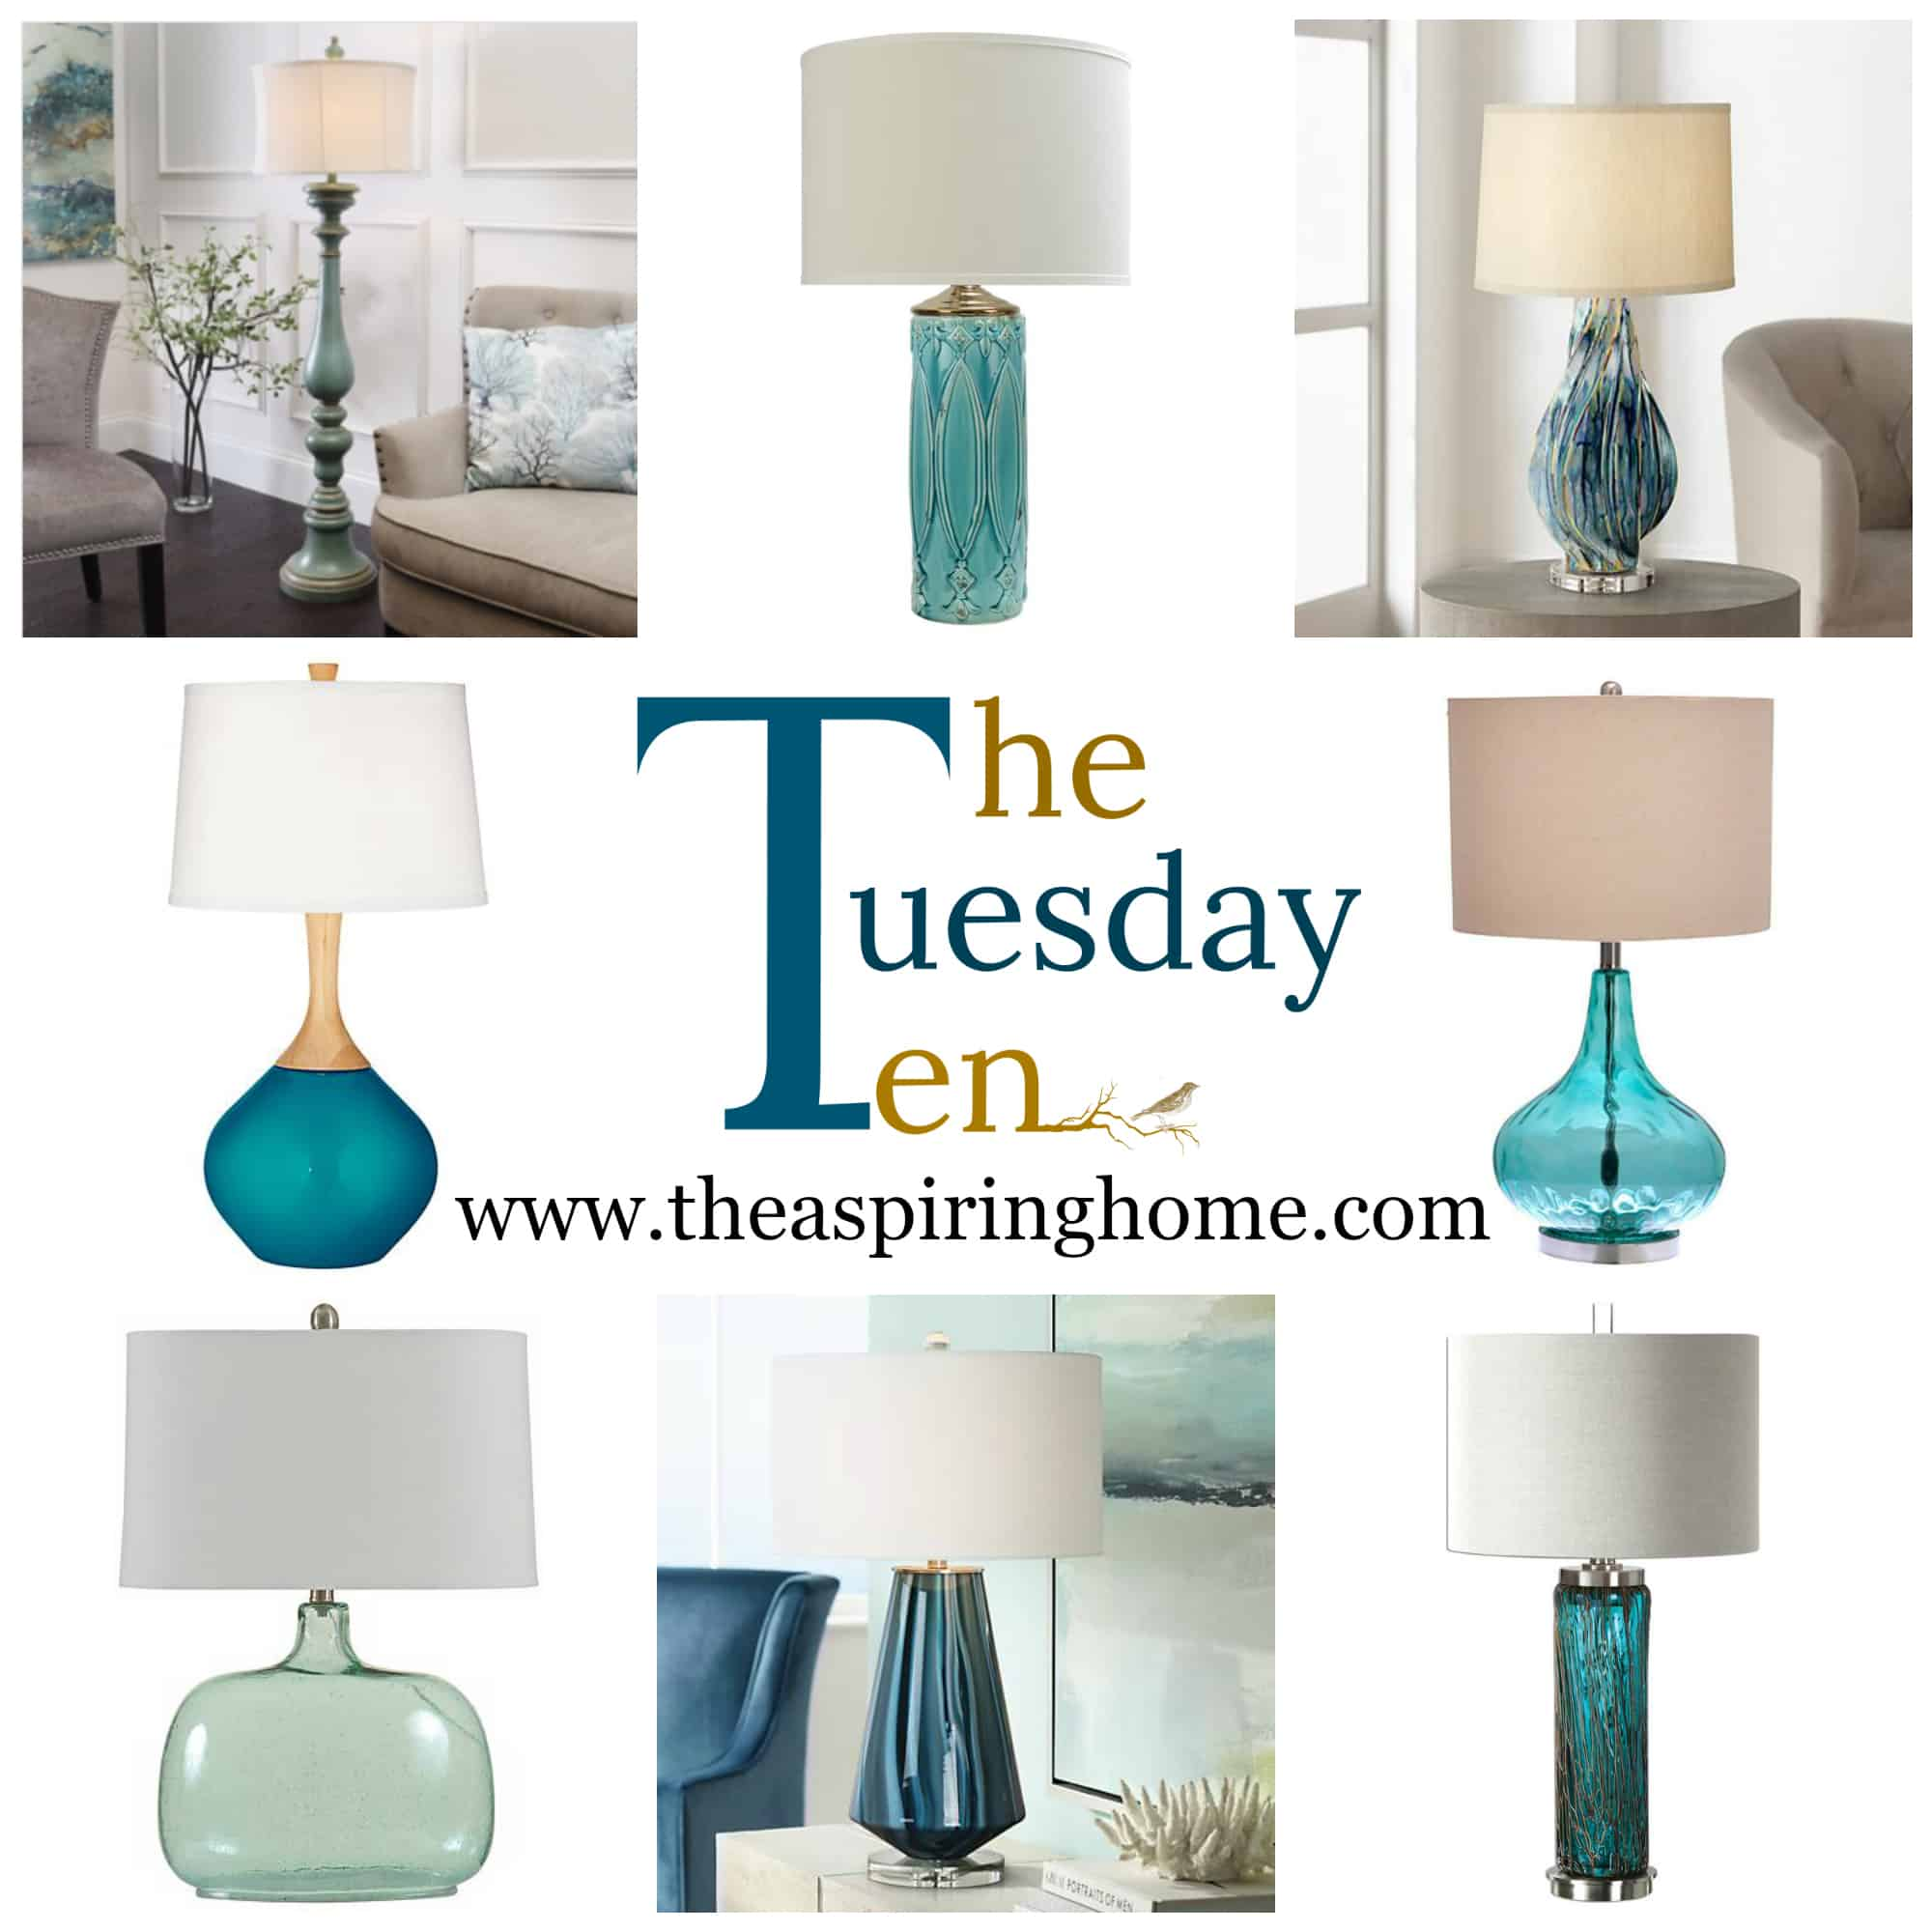 Turquoise Table Lamps The Aspiring Home